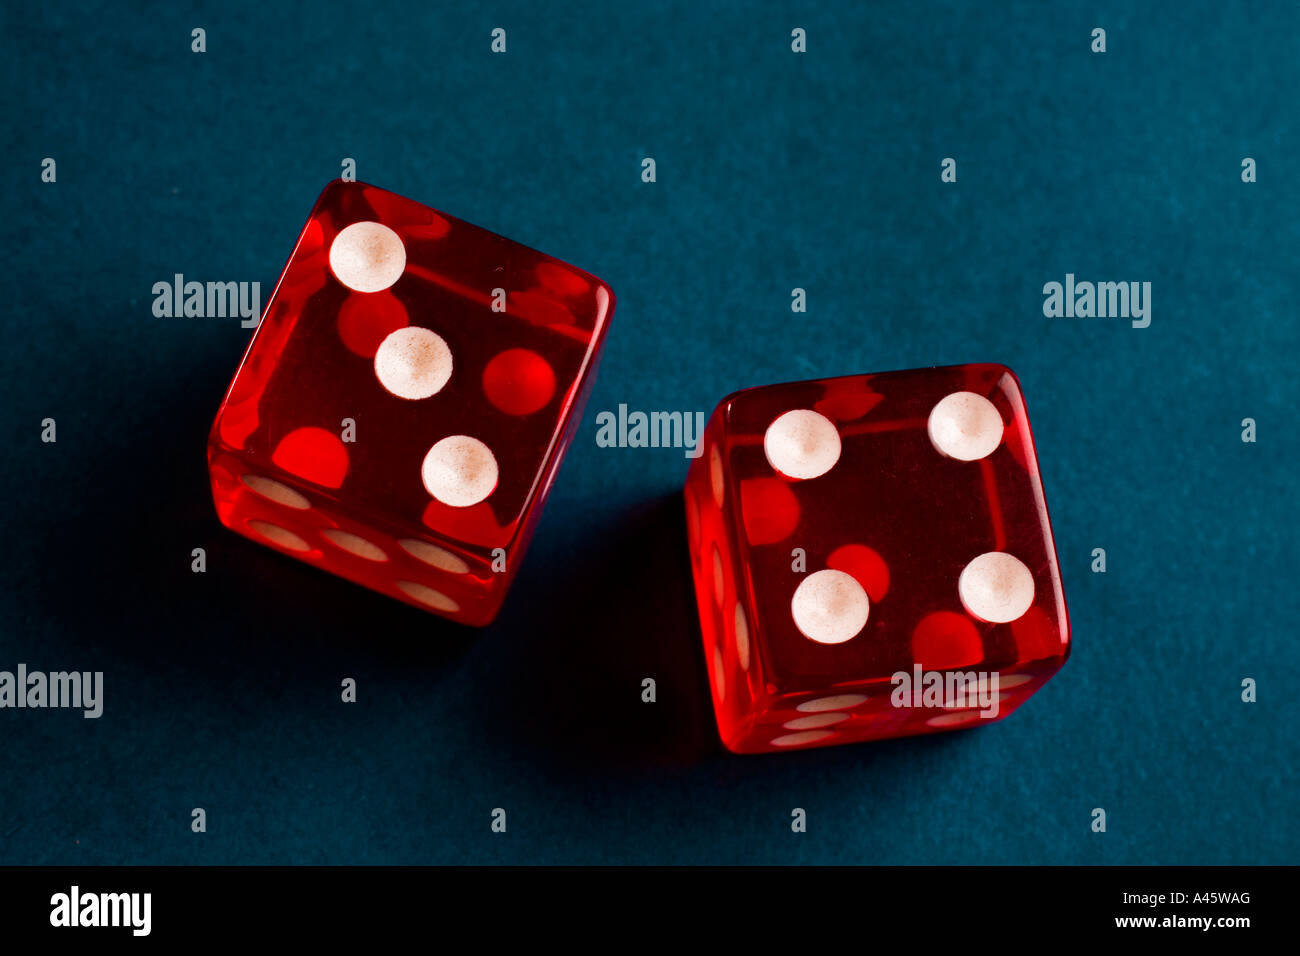 a pair of dice with the number seven showing - Stock Image